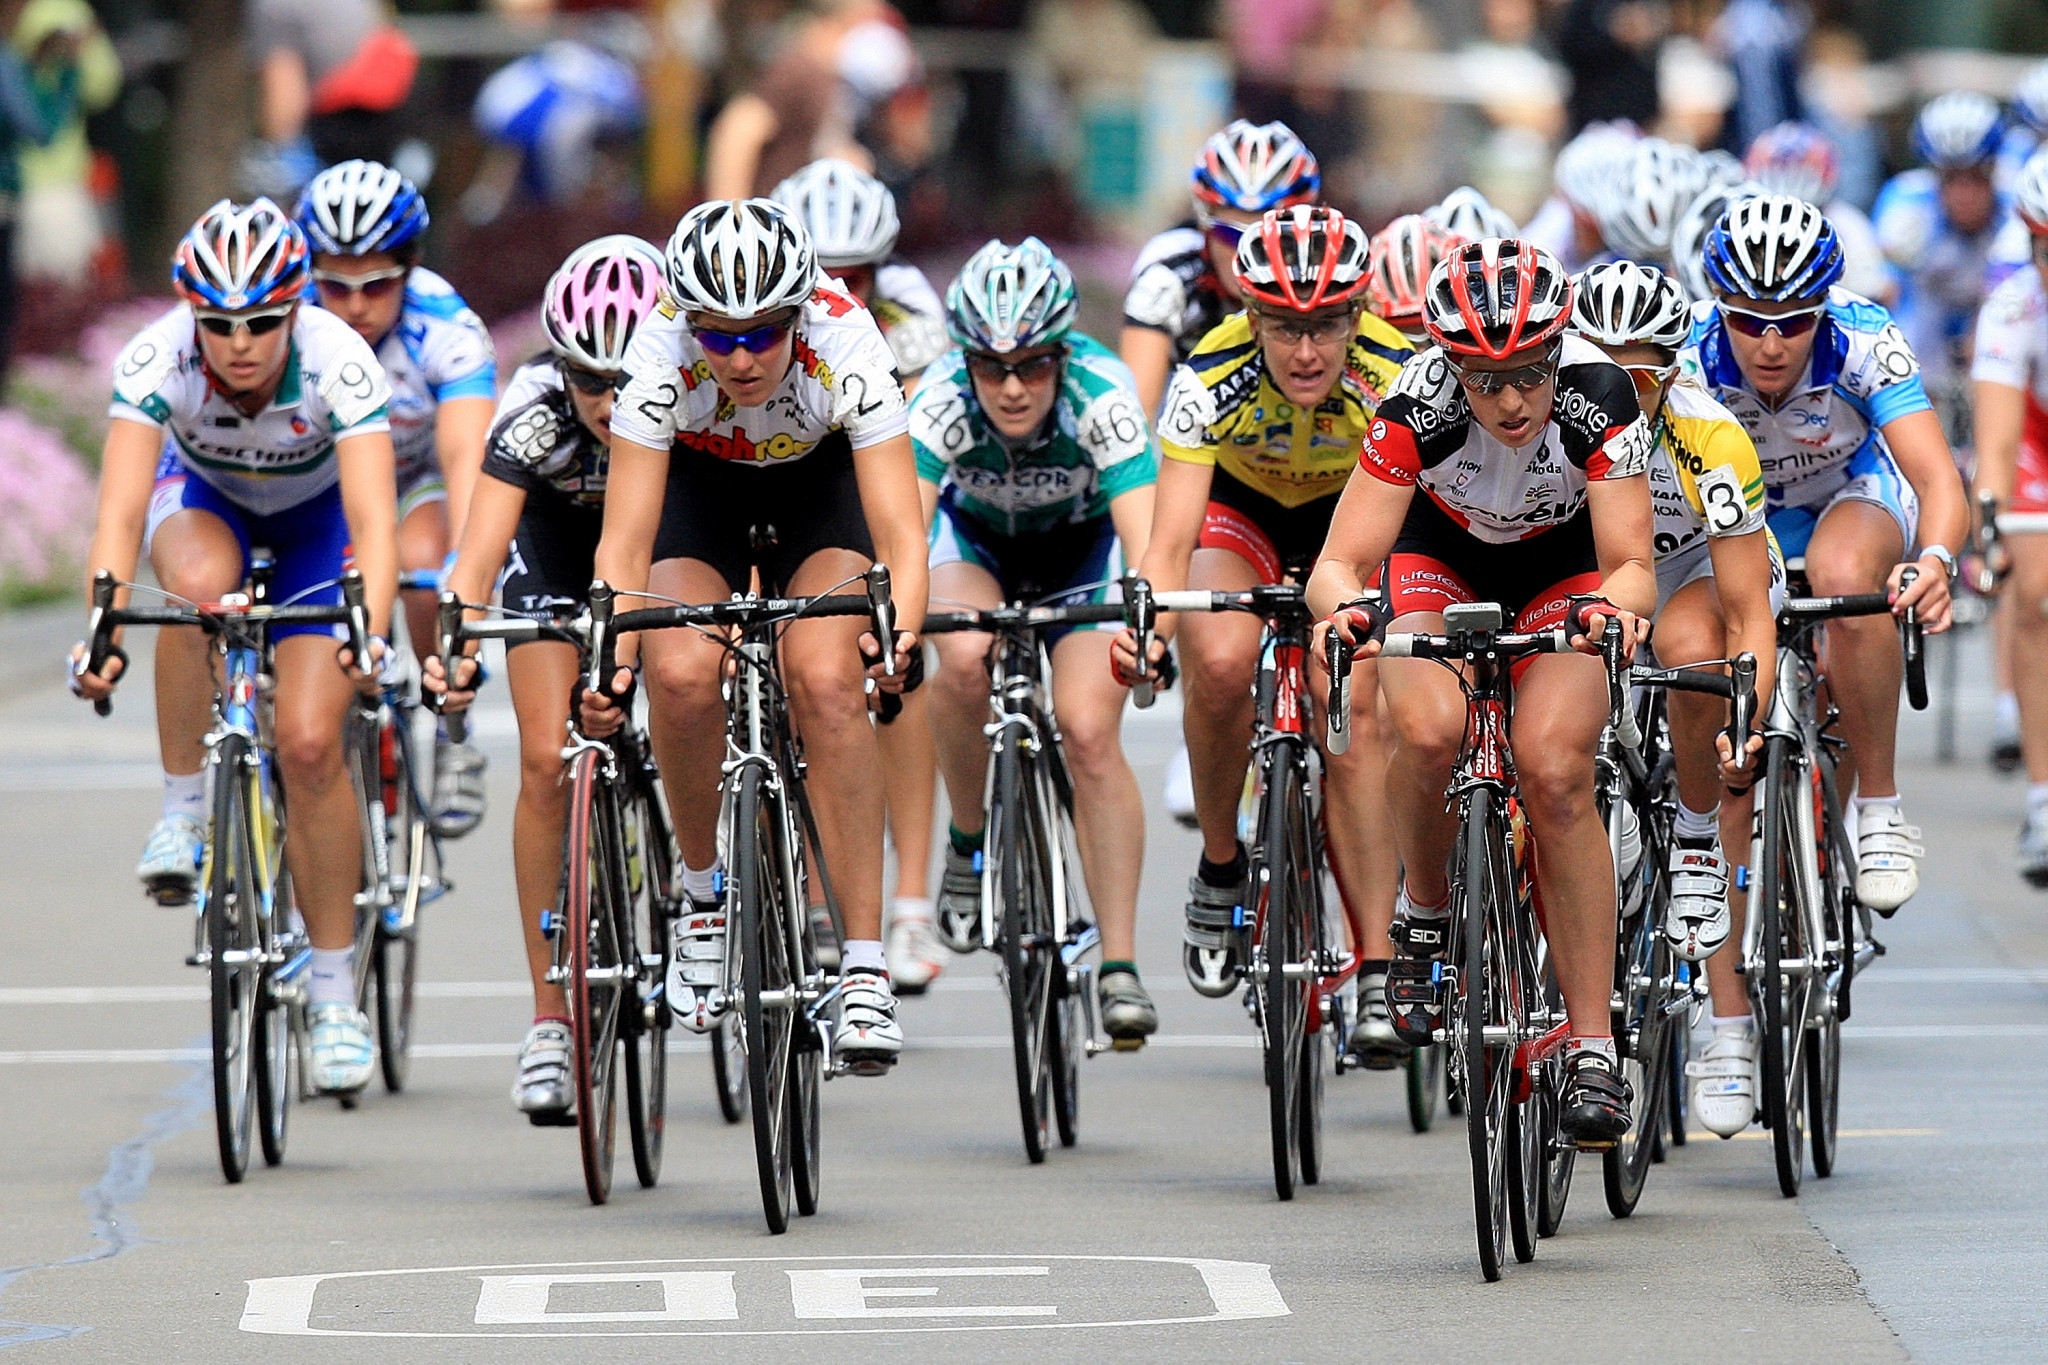 There has been concern about the lack of clarity regarding the UCI women's race calendar ©Getty Images